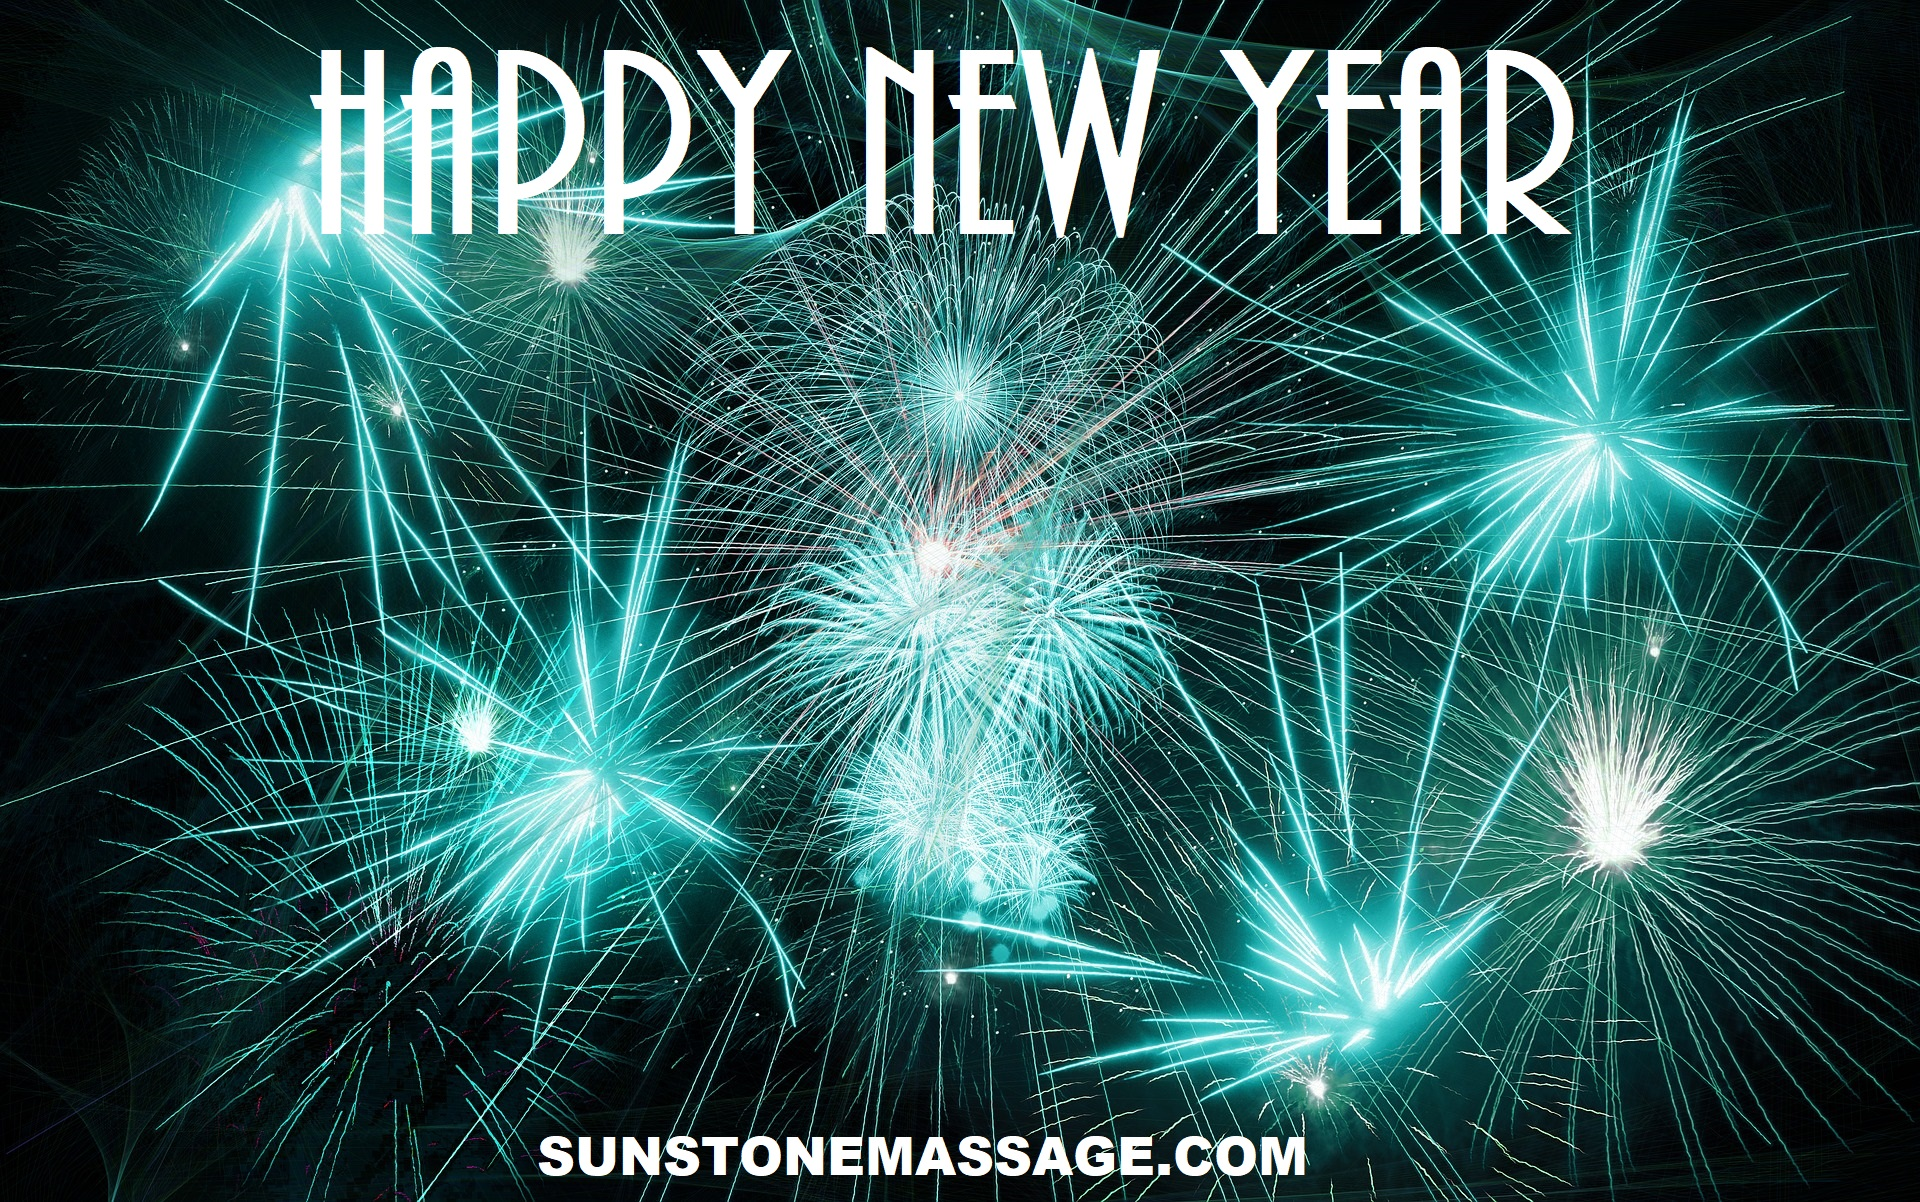 HAPPY NEW YEAR WISHES, IMAGES, GREETINGS AND MESSAGES WITH MASSAGE THERAPY